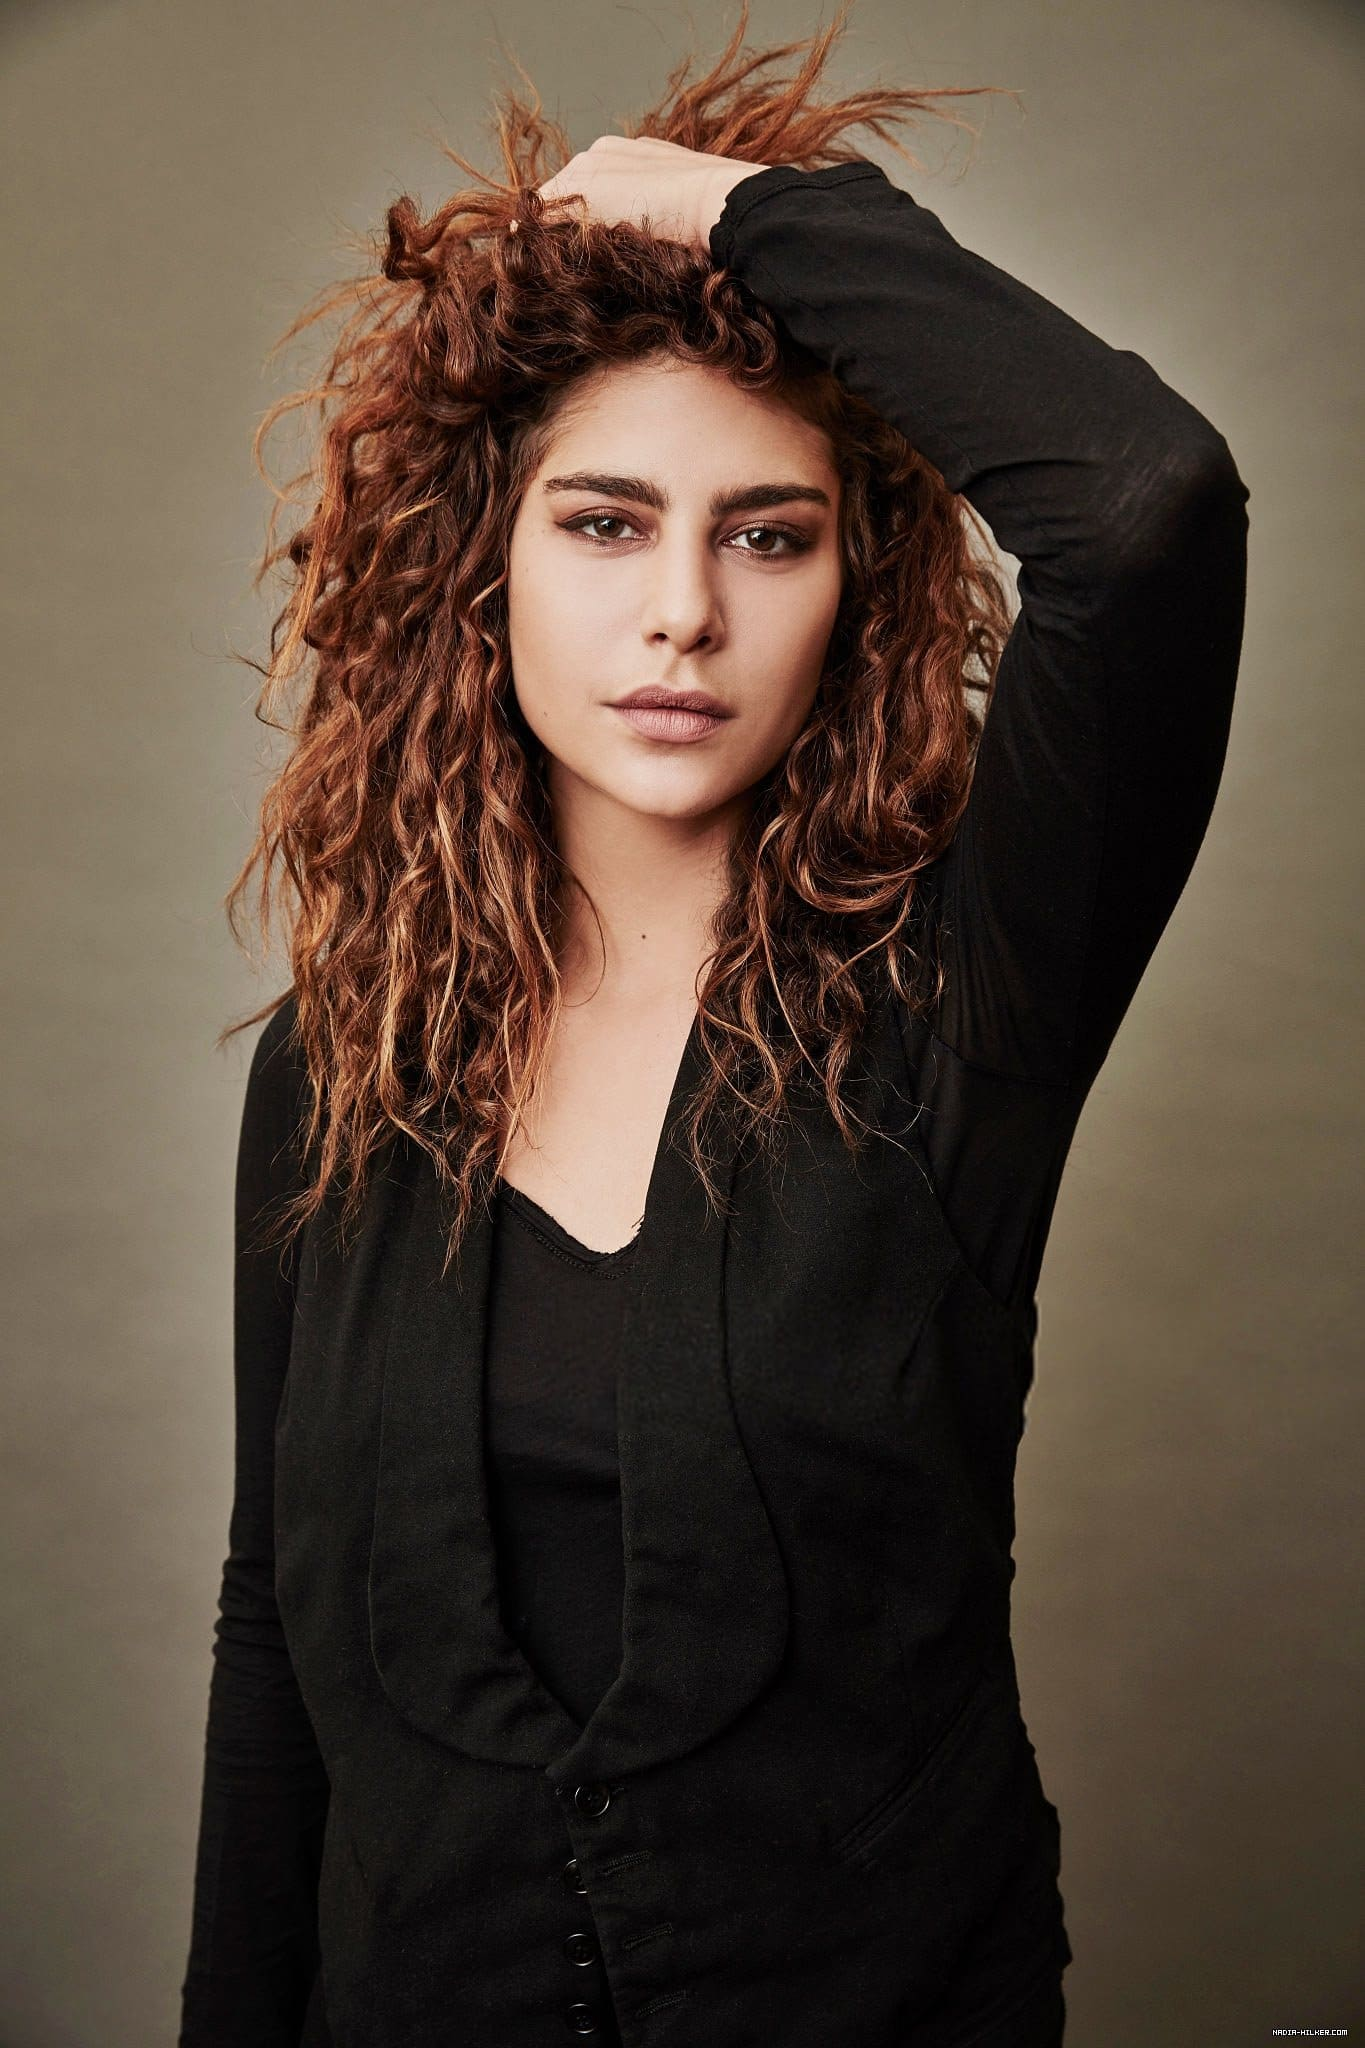 Nadia Hilker German Actress, Model